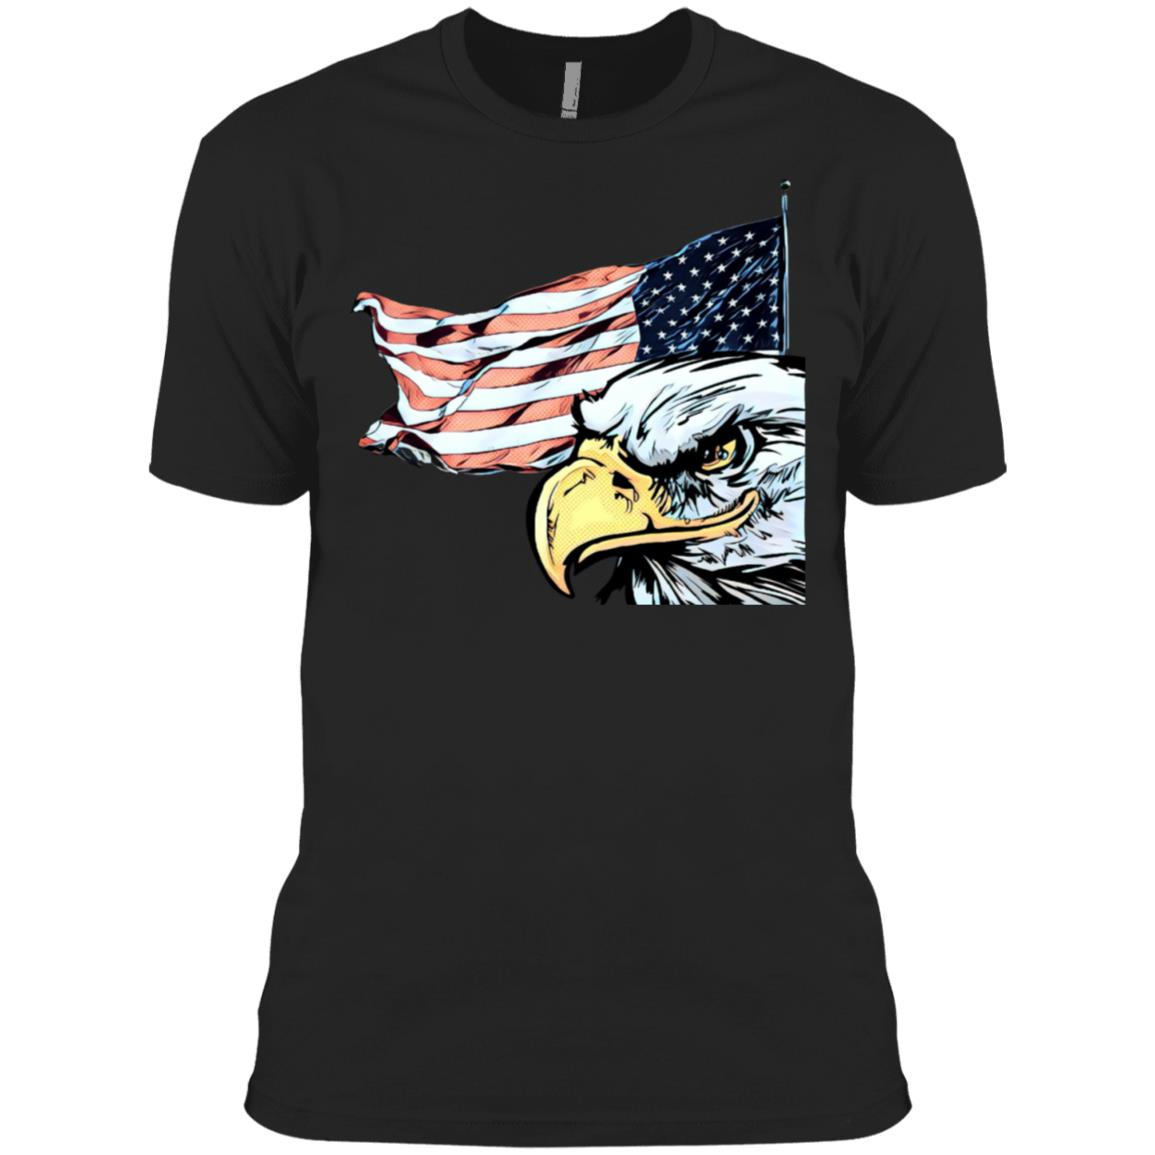 Pop Art Veterans Day Pop Art Retro Vintage Eagles Flags 3600A Next Level Men's Made in USA Cotton T-Shirt